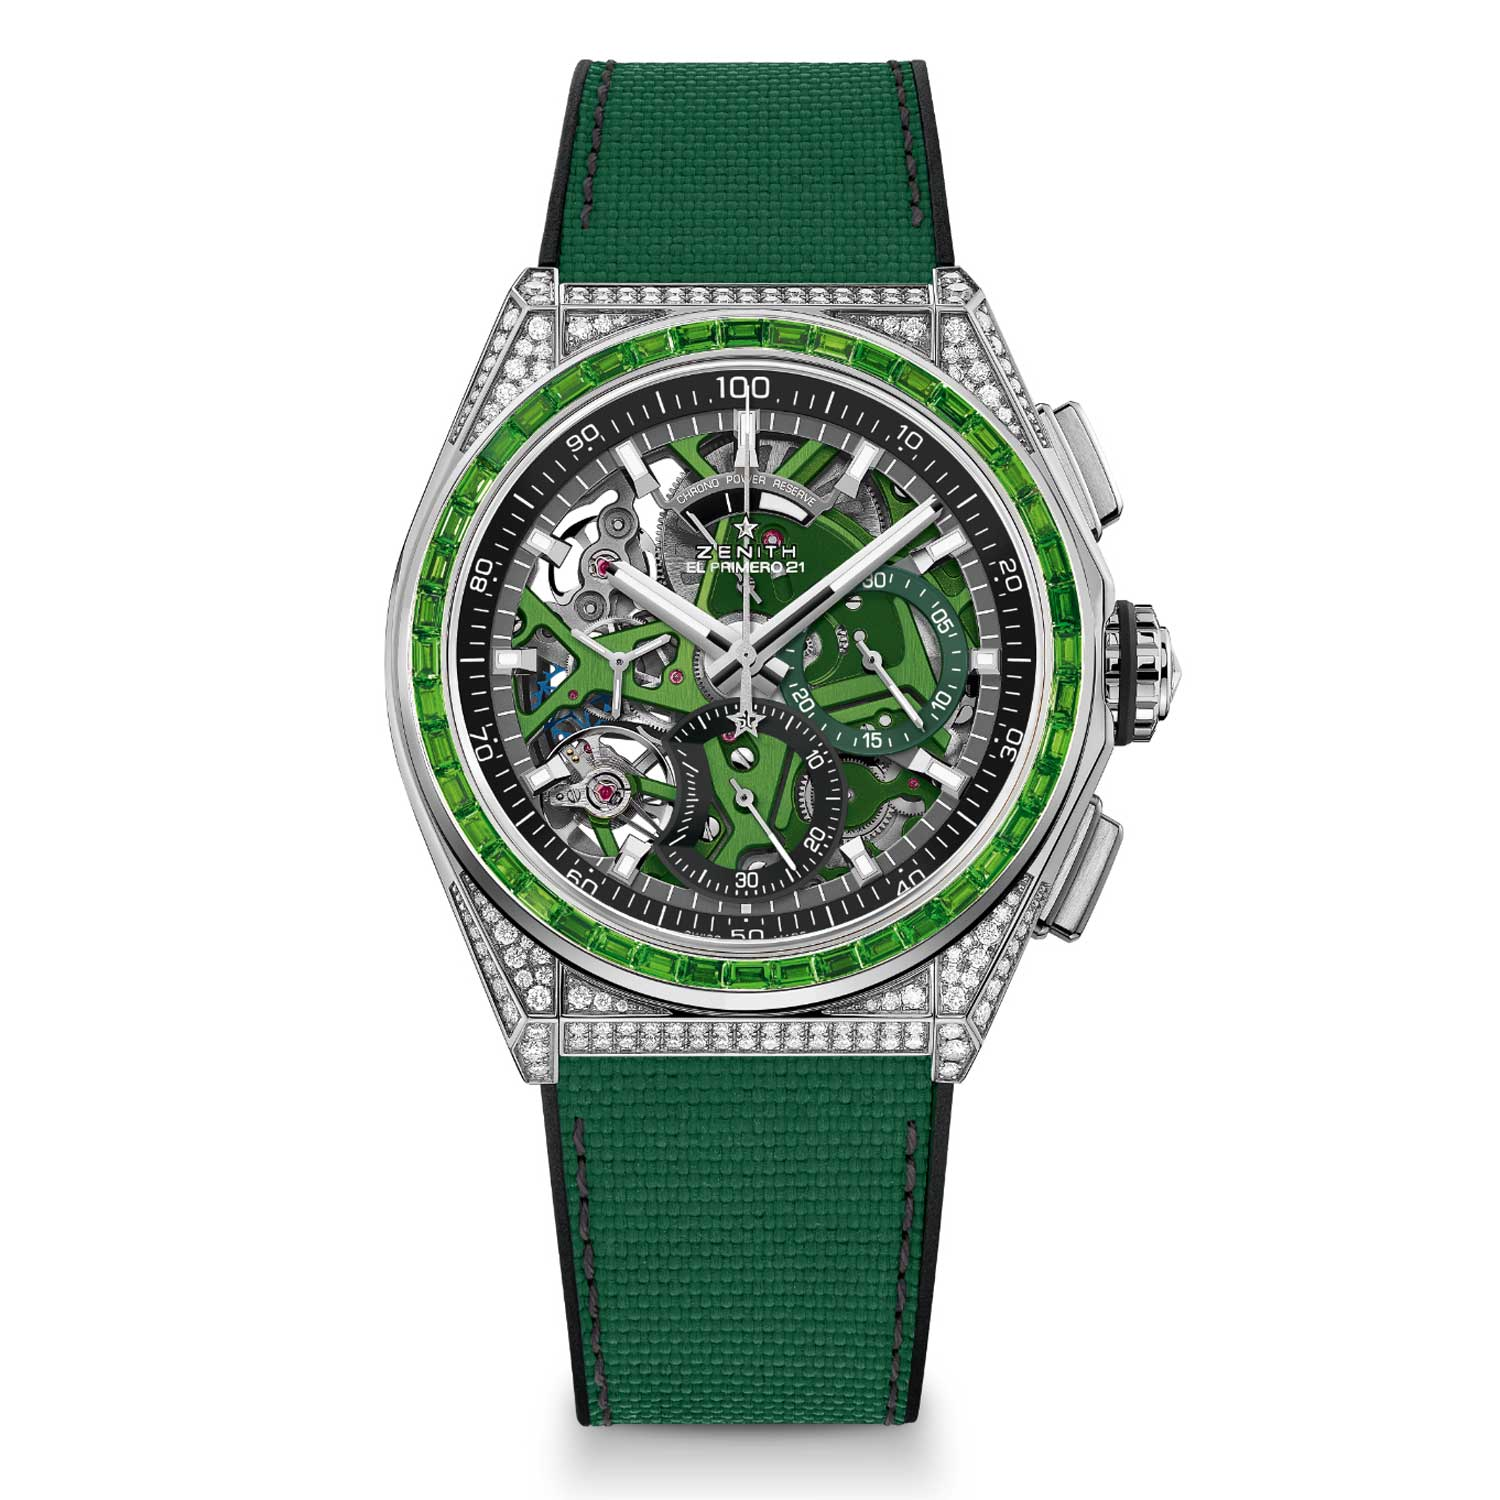 The watch is made from stainless steel with its skeleton dial revealing full chronometer certified chronograph sub-dials